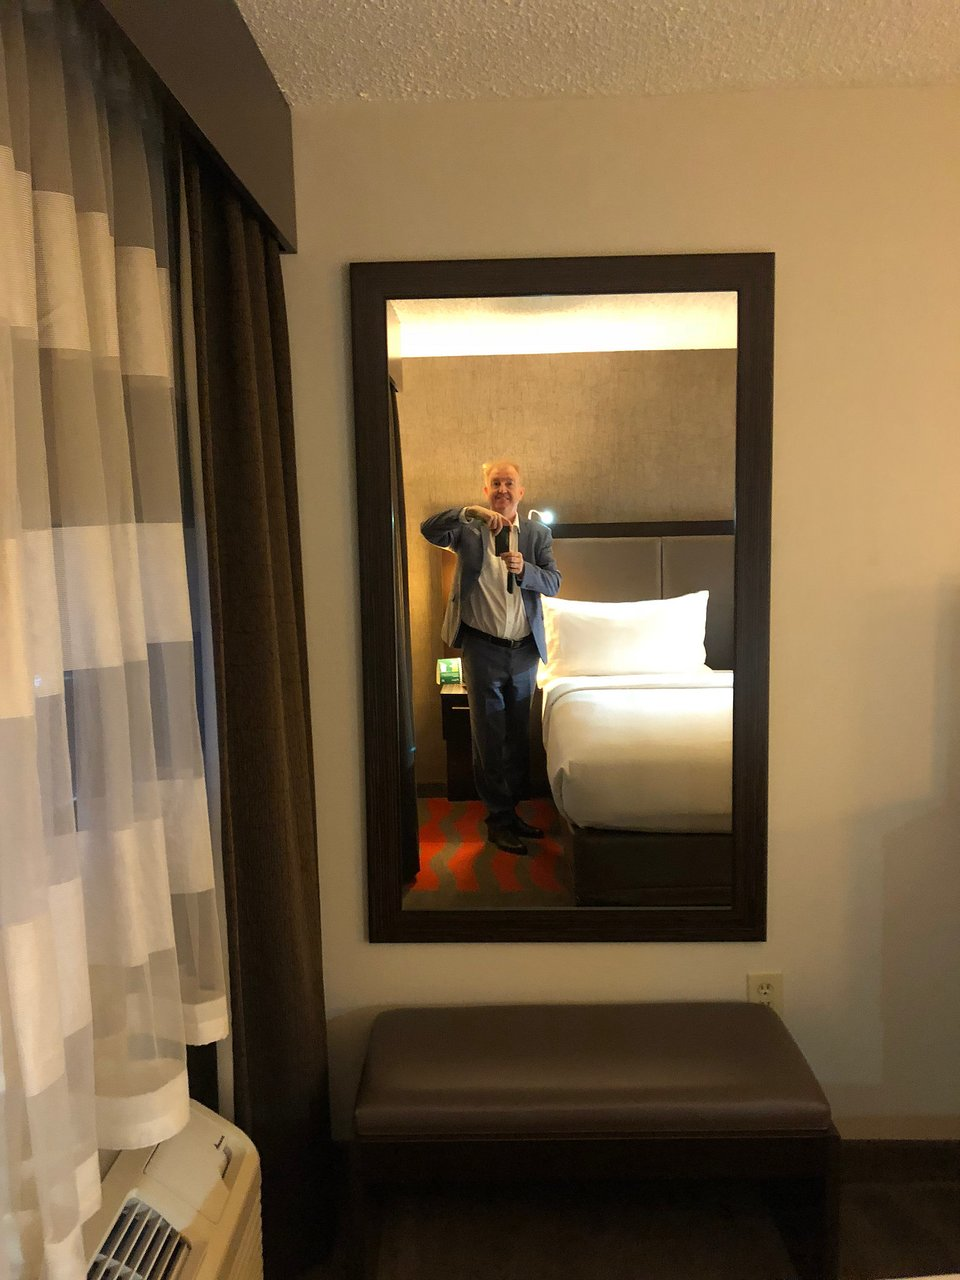 HOLIDAY INN NEWARK AIRPORT - Updated 2018 Prices & Hotel Reviews (NJ ...